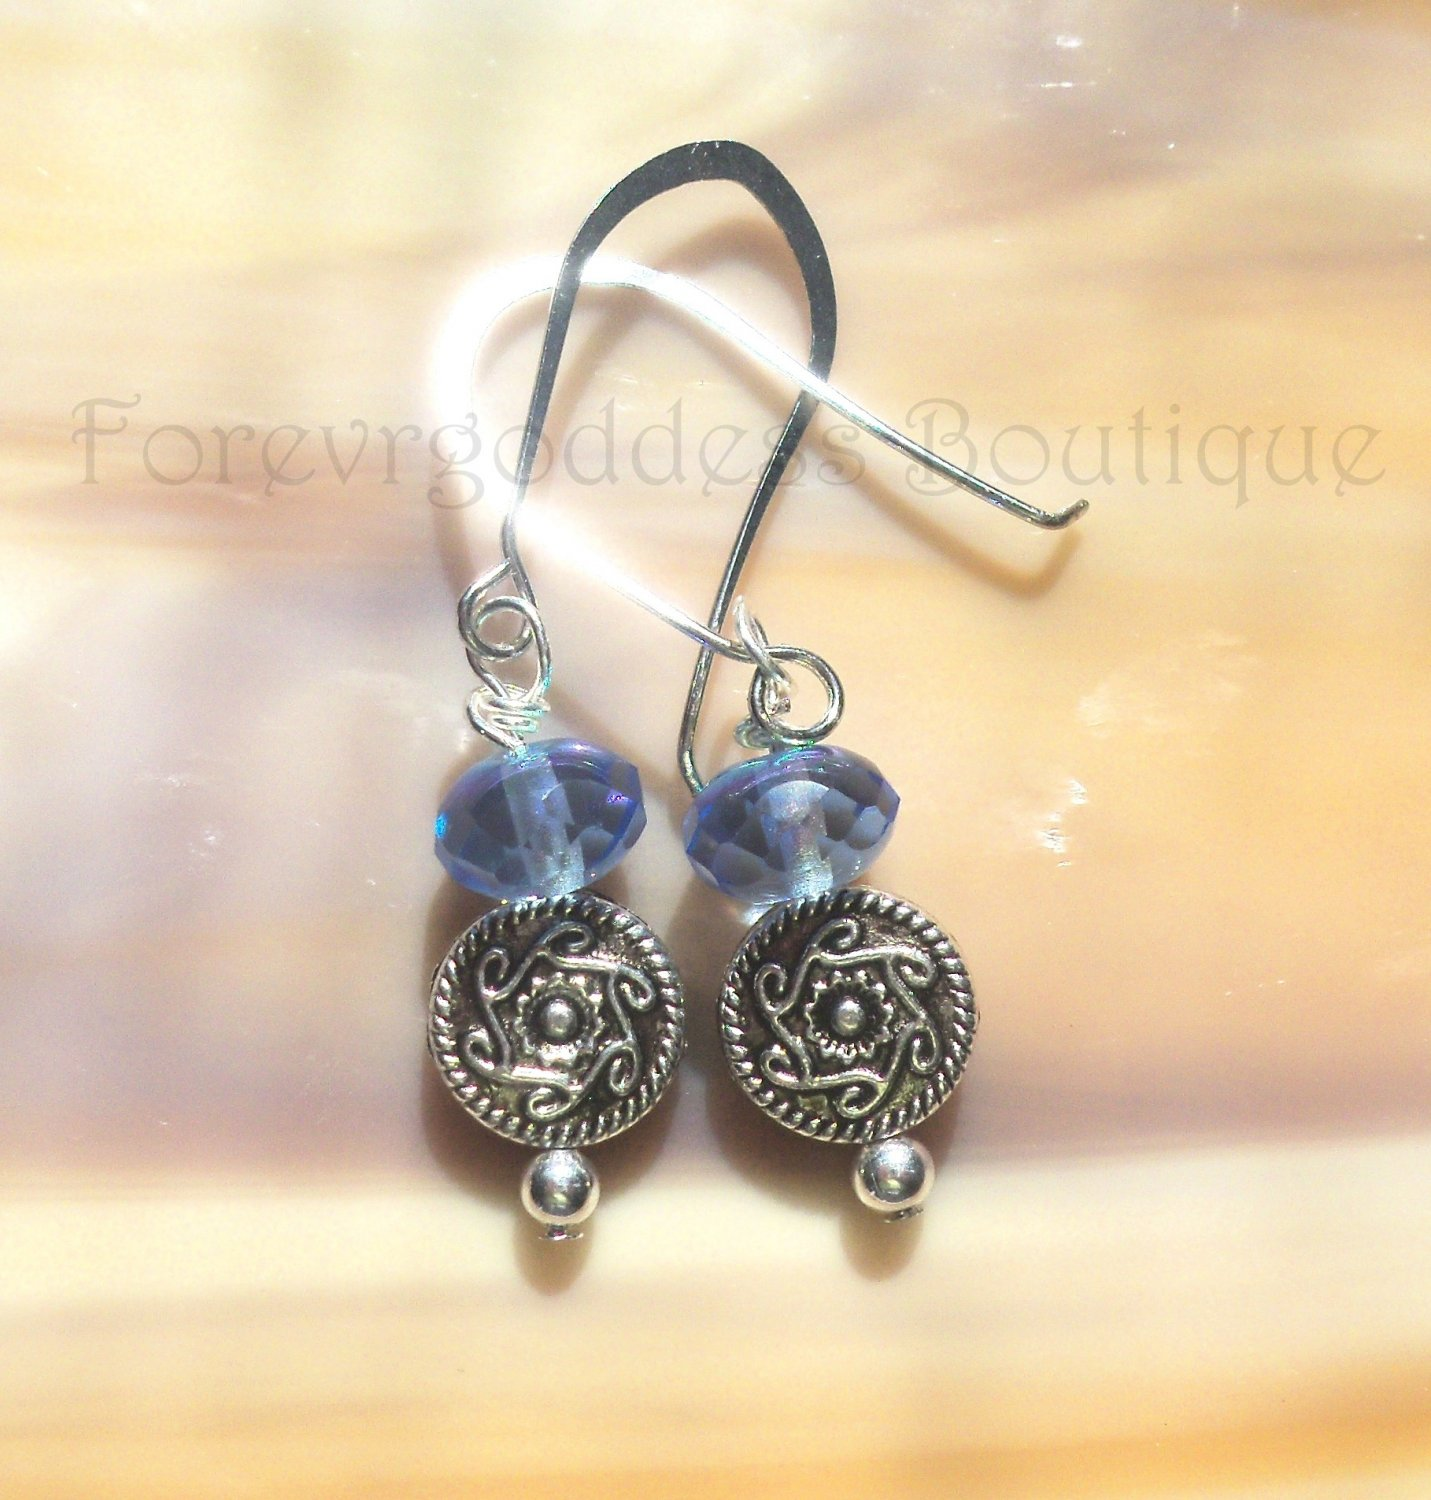 SKY Blue crystals with Indian swirls earrings